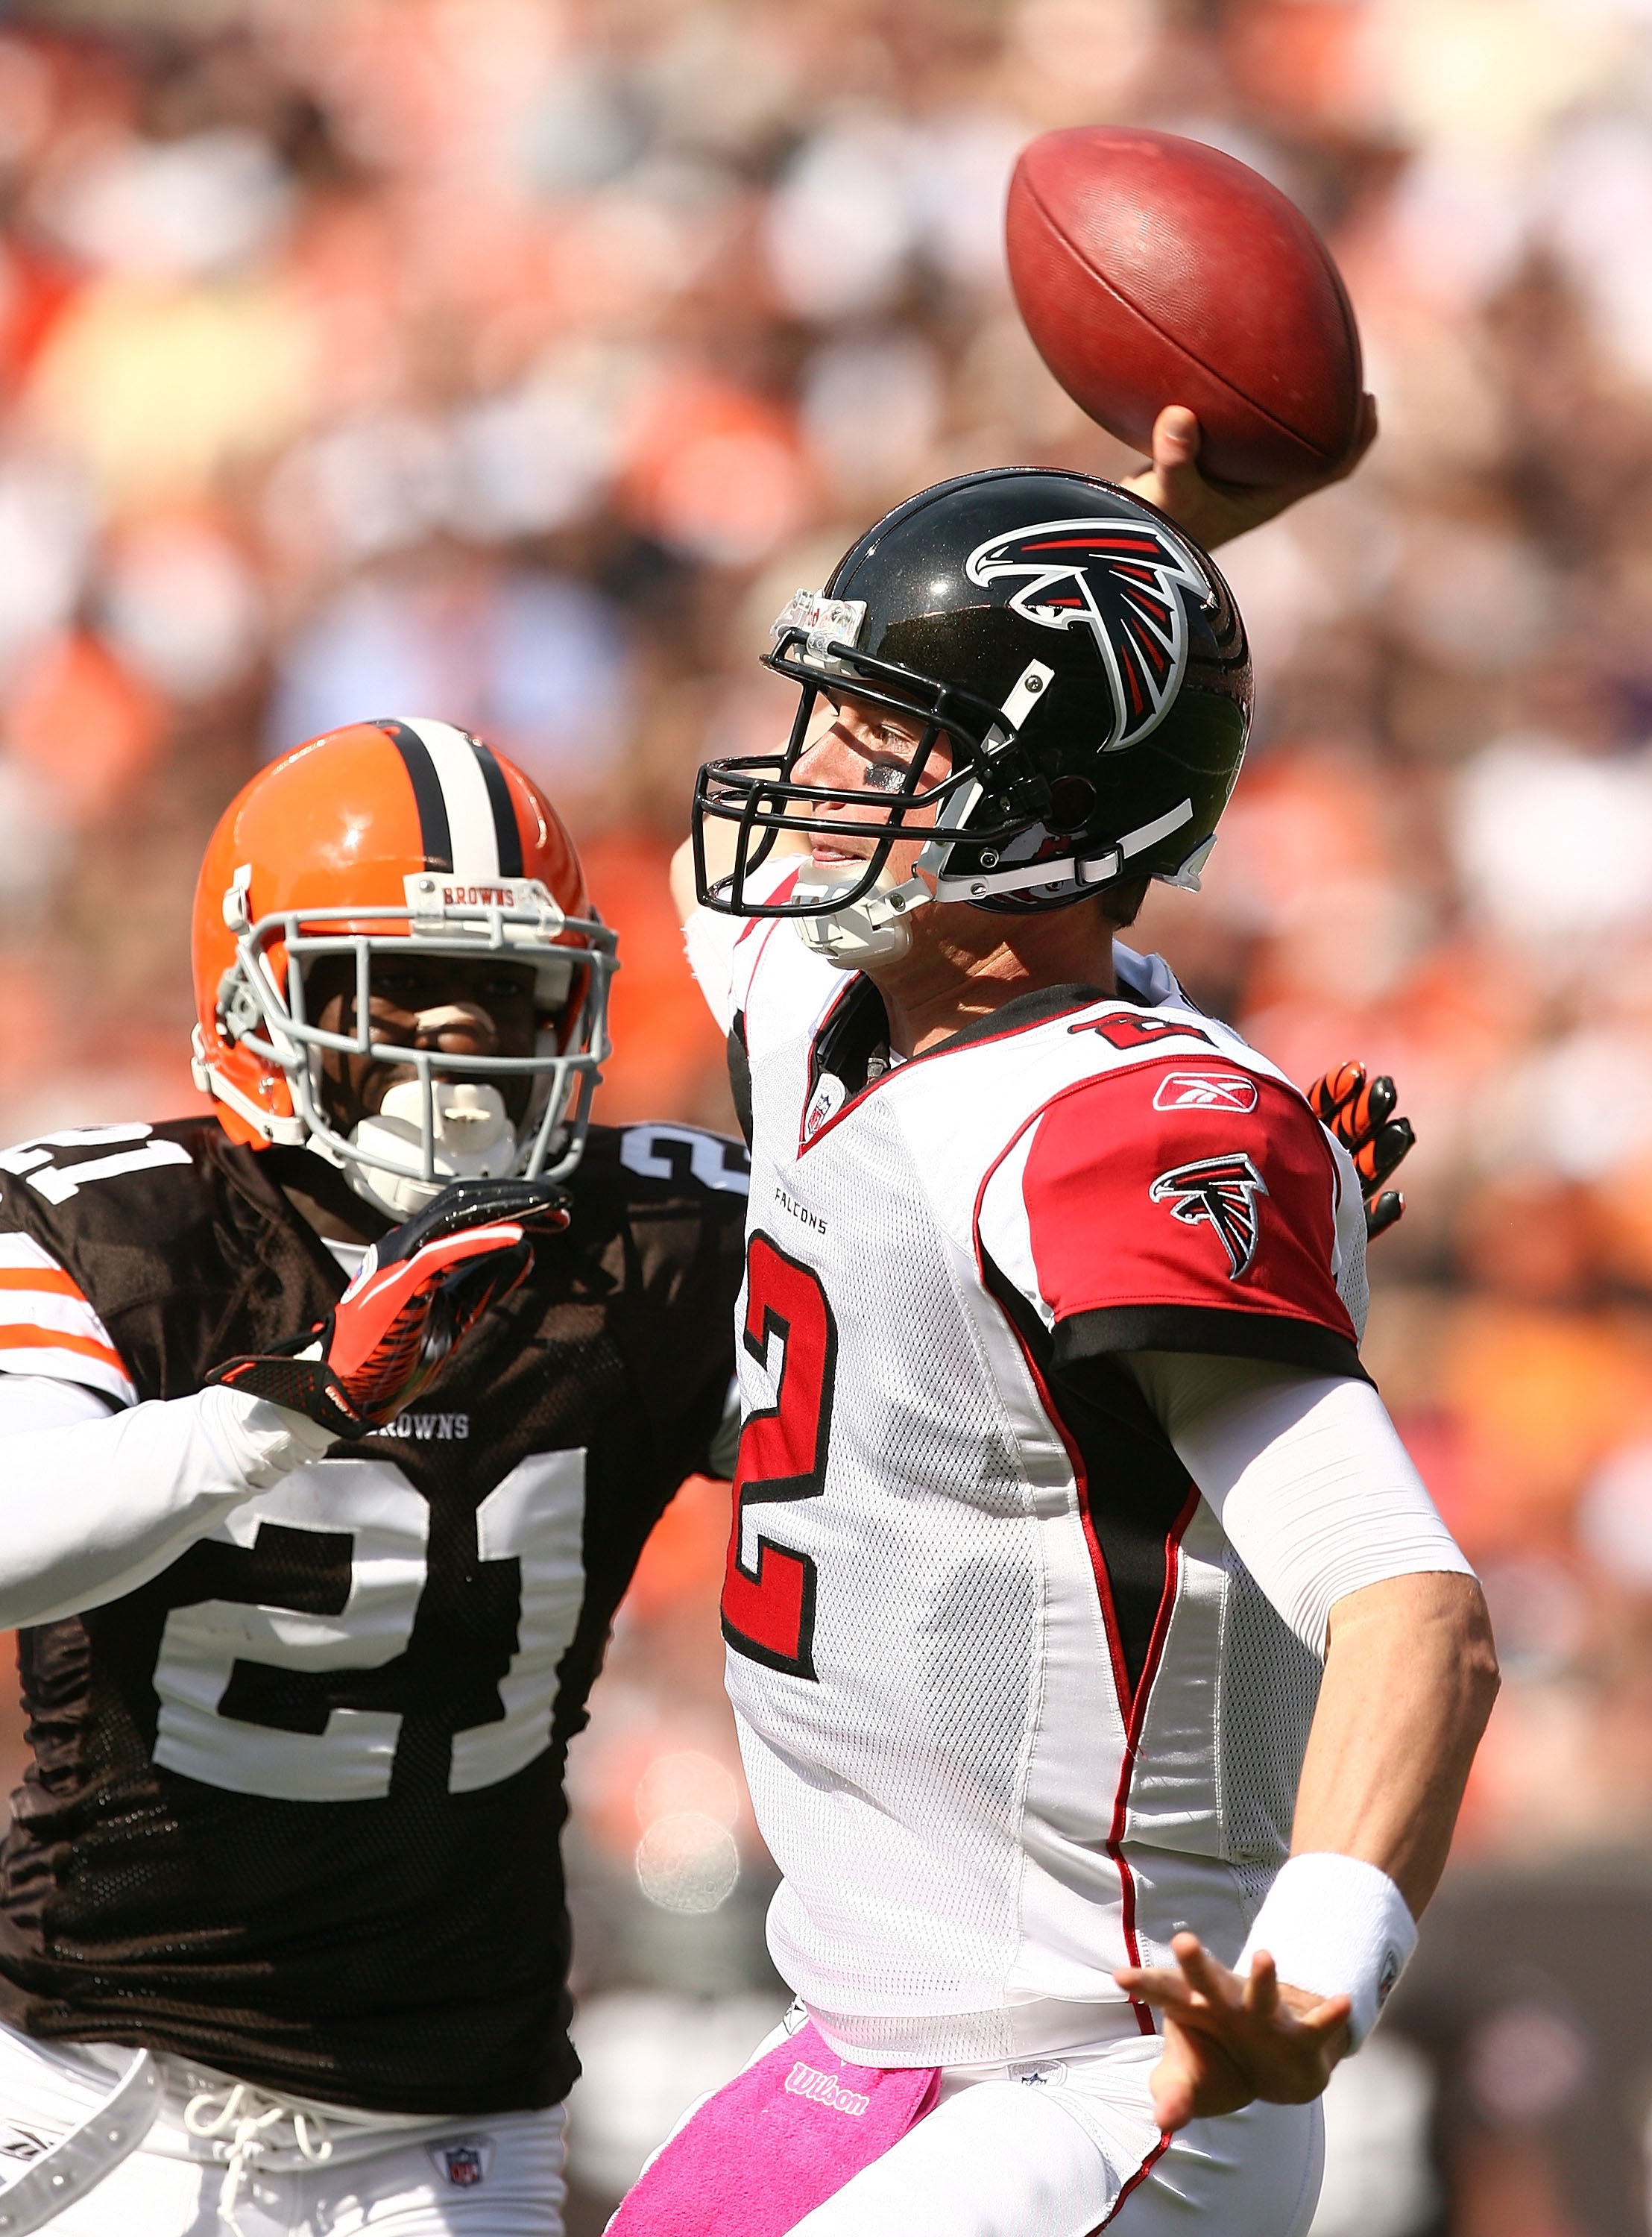 CLEVELAND - OCTOBER 10:  Quarterback Matt Ryan #2 of the Atlanta Falcons throws to a receiver as he is pressured by defensive back Eric Wright #21 at Cleveland Browns Stadium on October 10, 2010 in Cleveland, Ohio.  (Photo by Matt Sullivan/Getty Images)